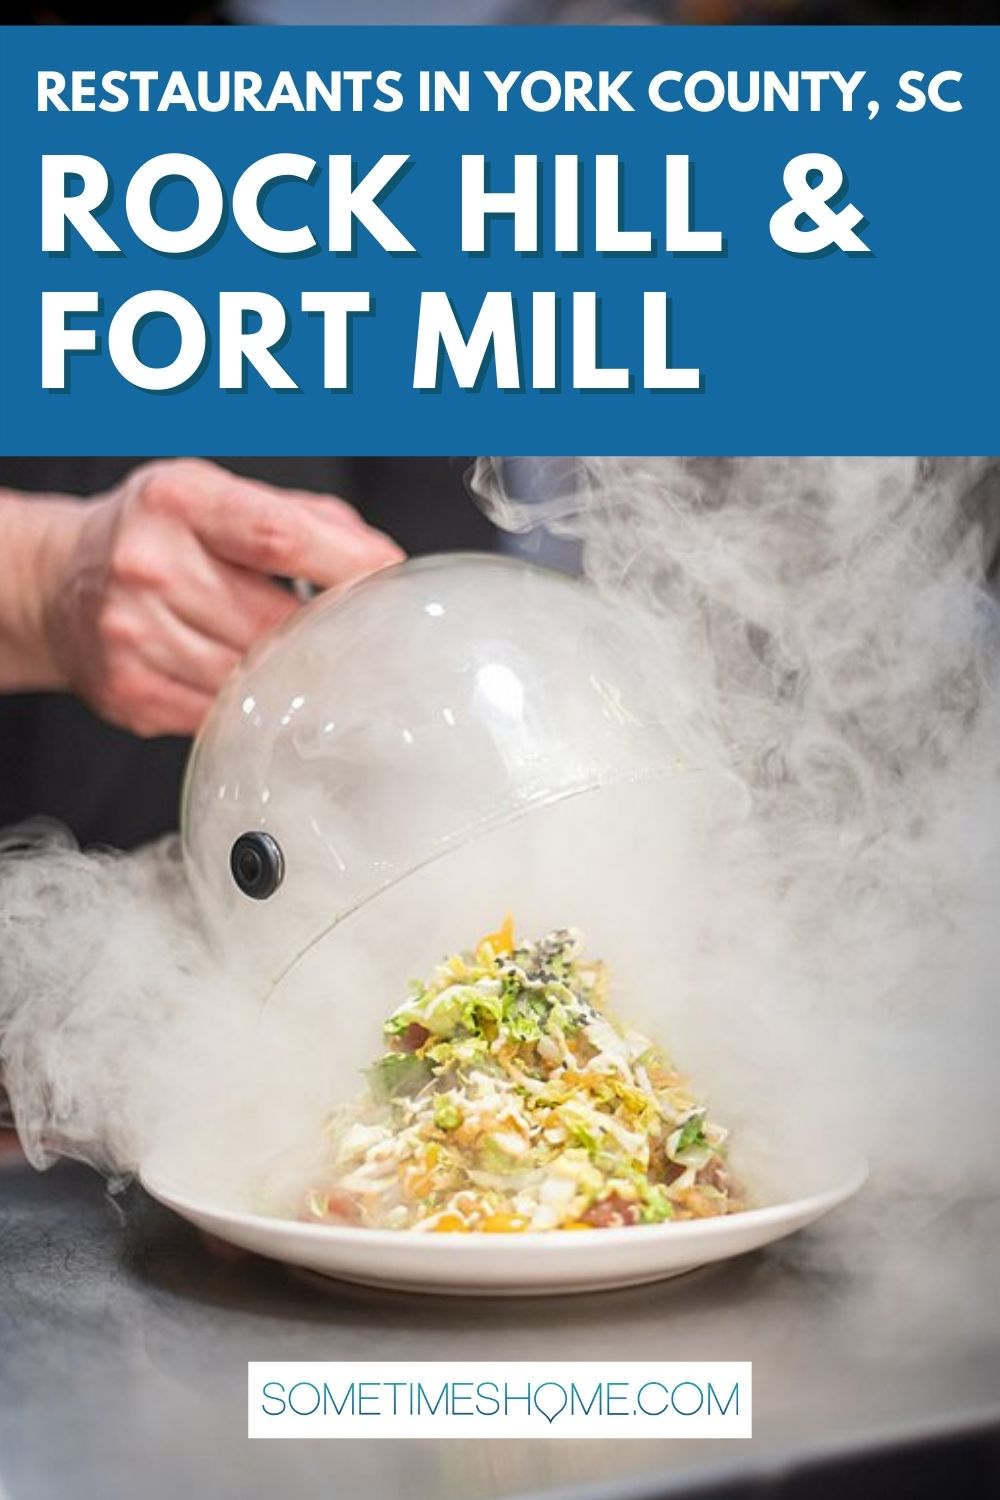 Pinterest image for restaurants in York County, SC, in Rock Hill and Fort Mill, with a picture of a salad and smoke for a dramatic restaurant presentation!